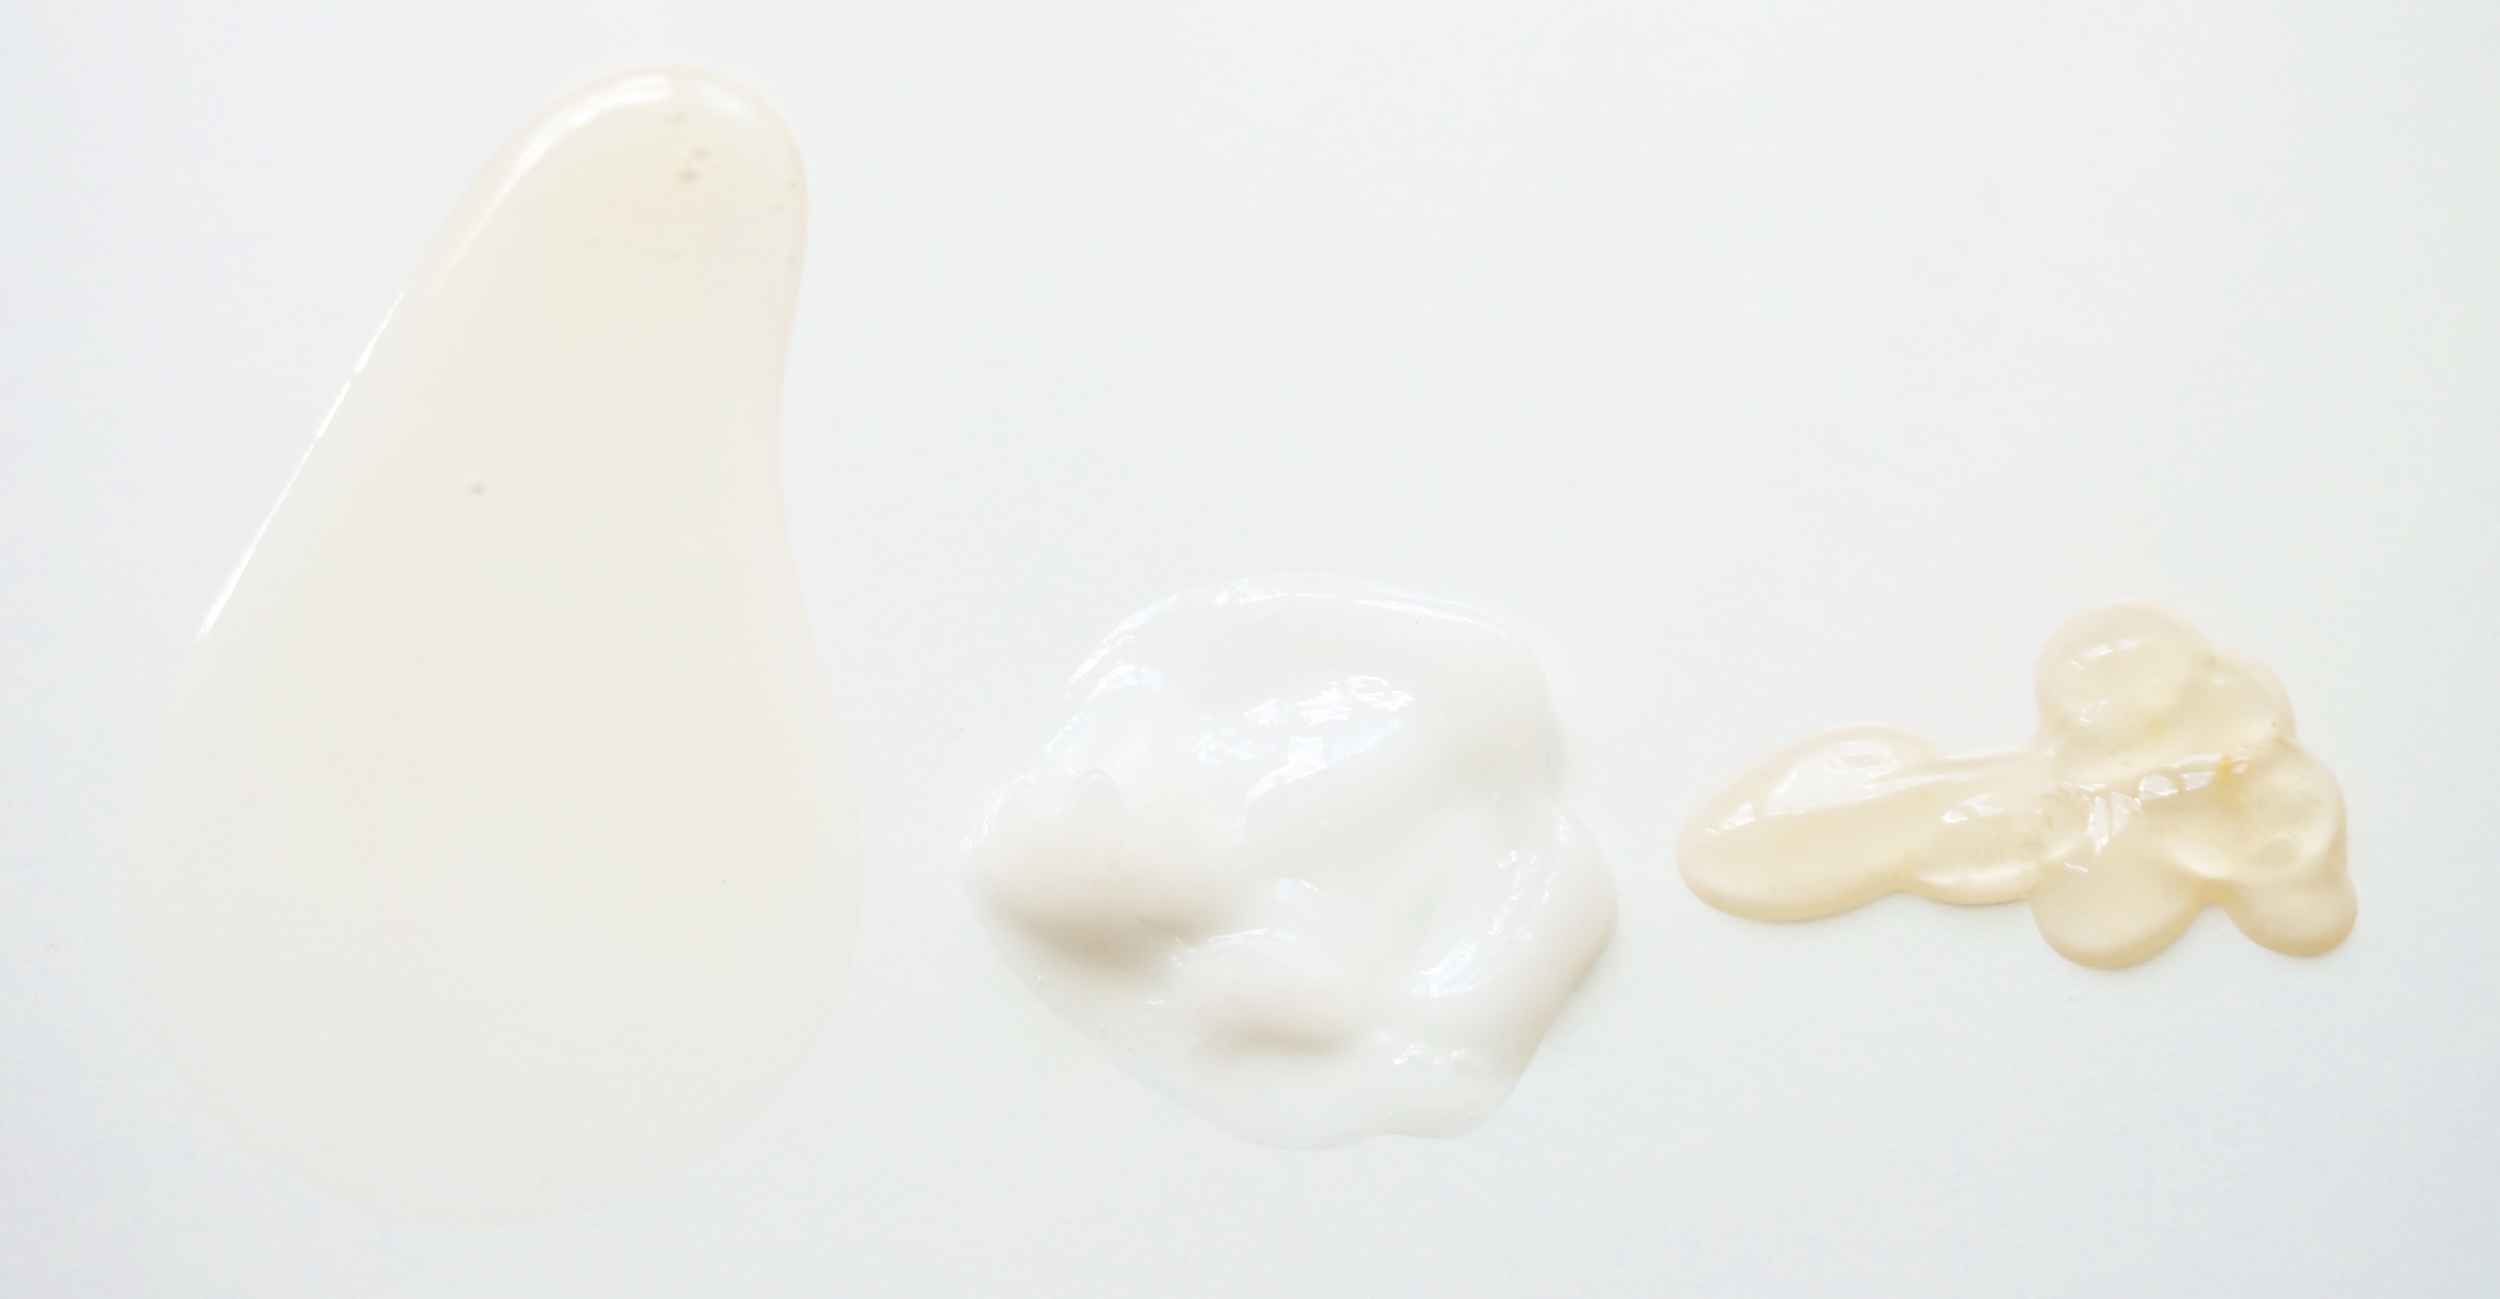 Zenutrients Gugo Hair Strengthening products: shampoo, conditioner, serum